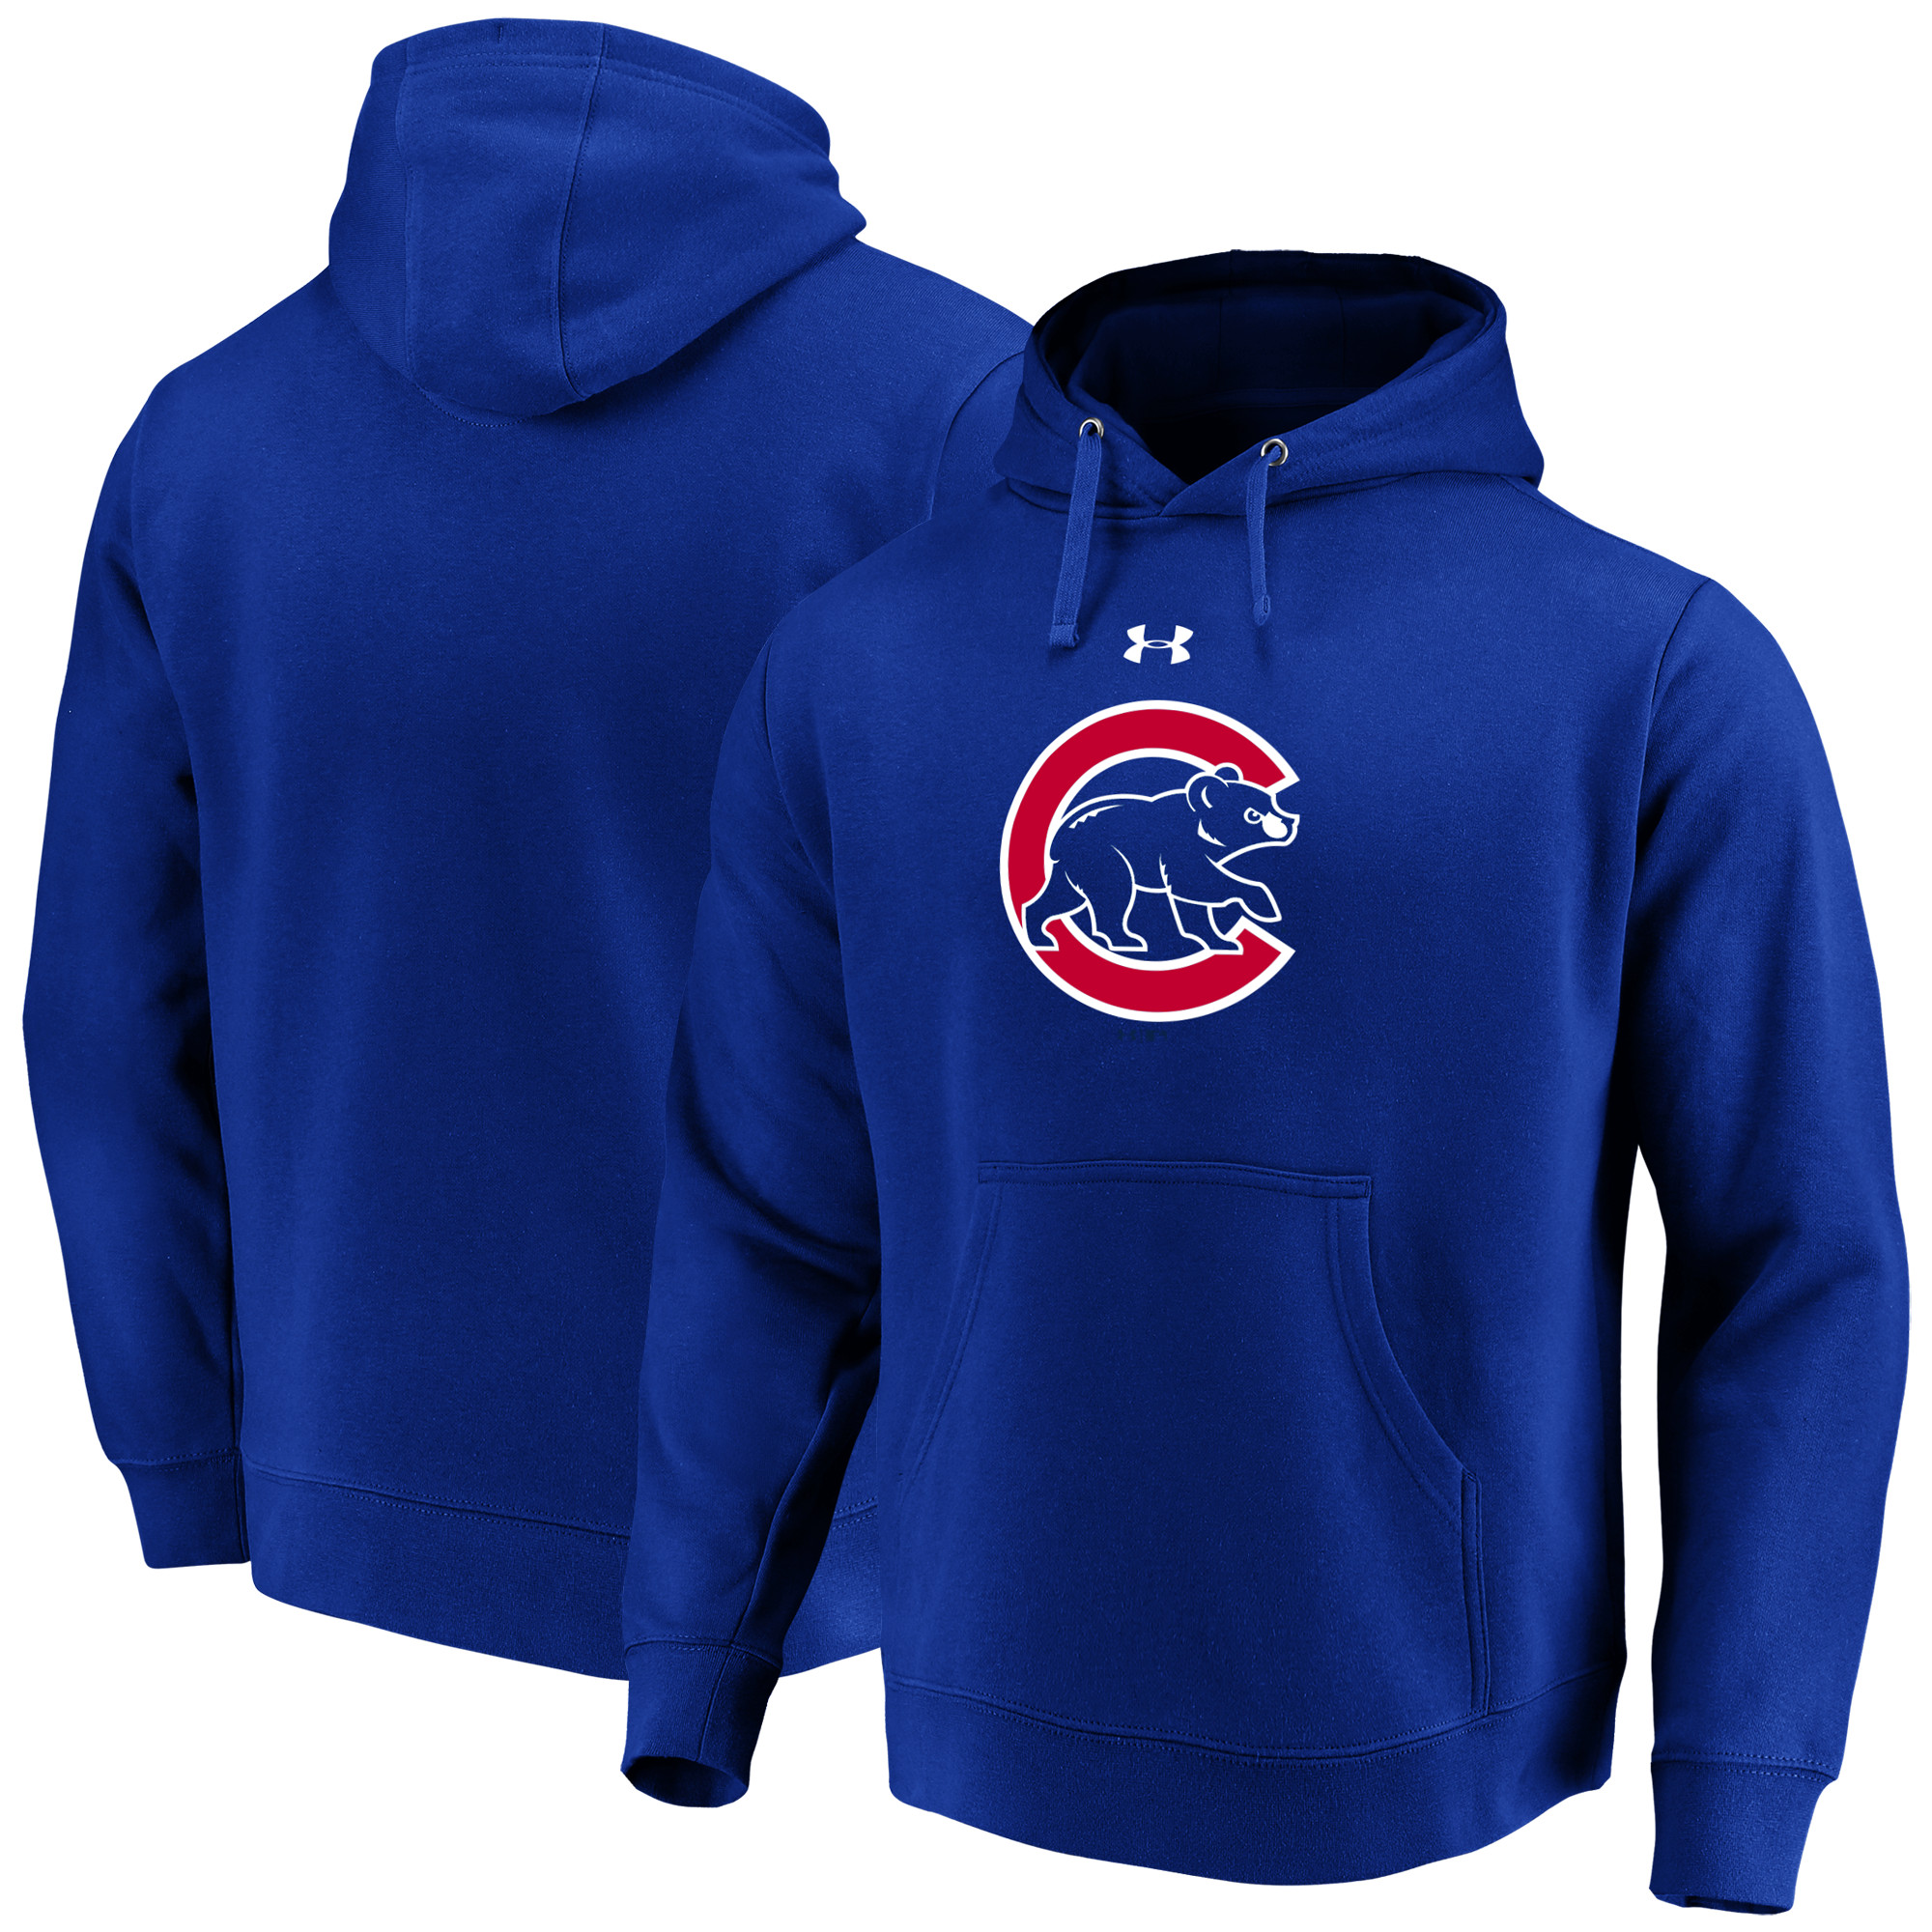 Chicago Cubs Under Armour Commitment Team Mark Performance Pullover Hoodie - Royal